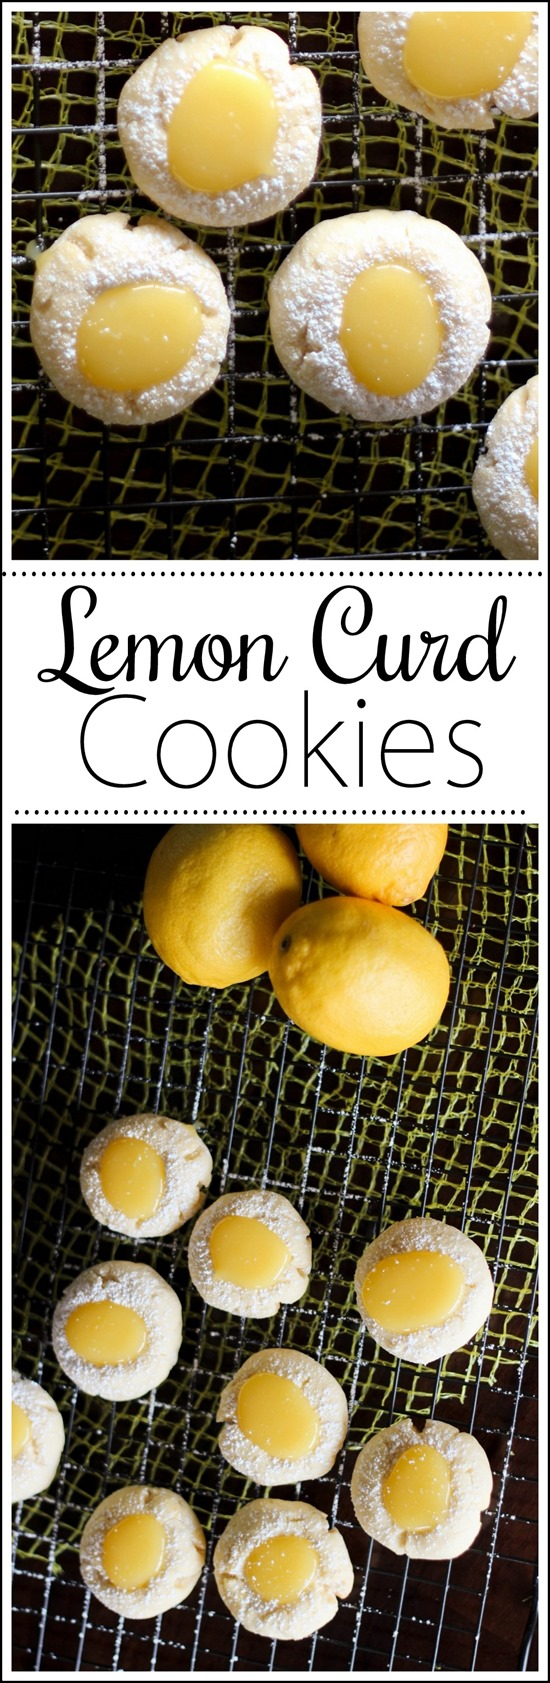 Recipe for Lemon Curd Cookies #Lemon #Zest